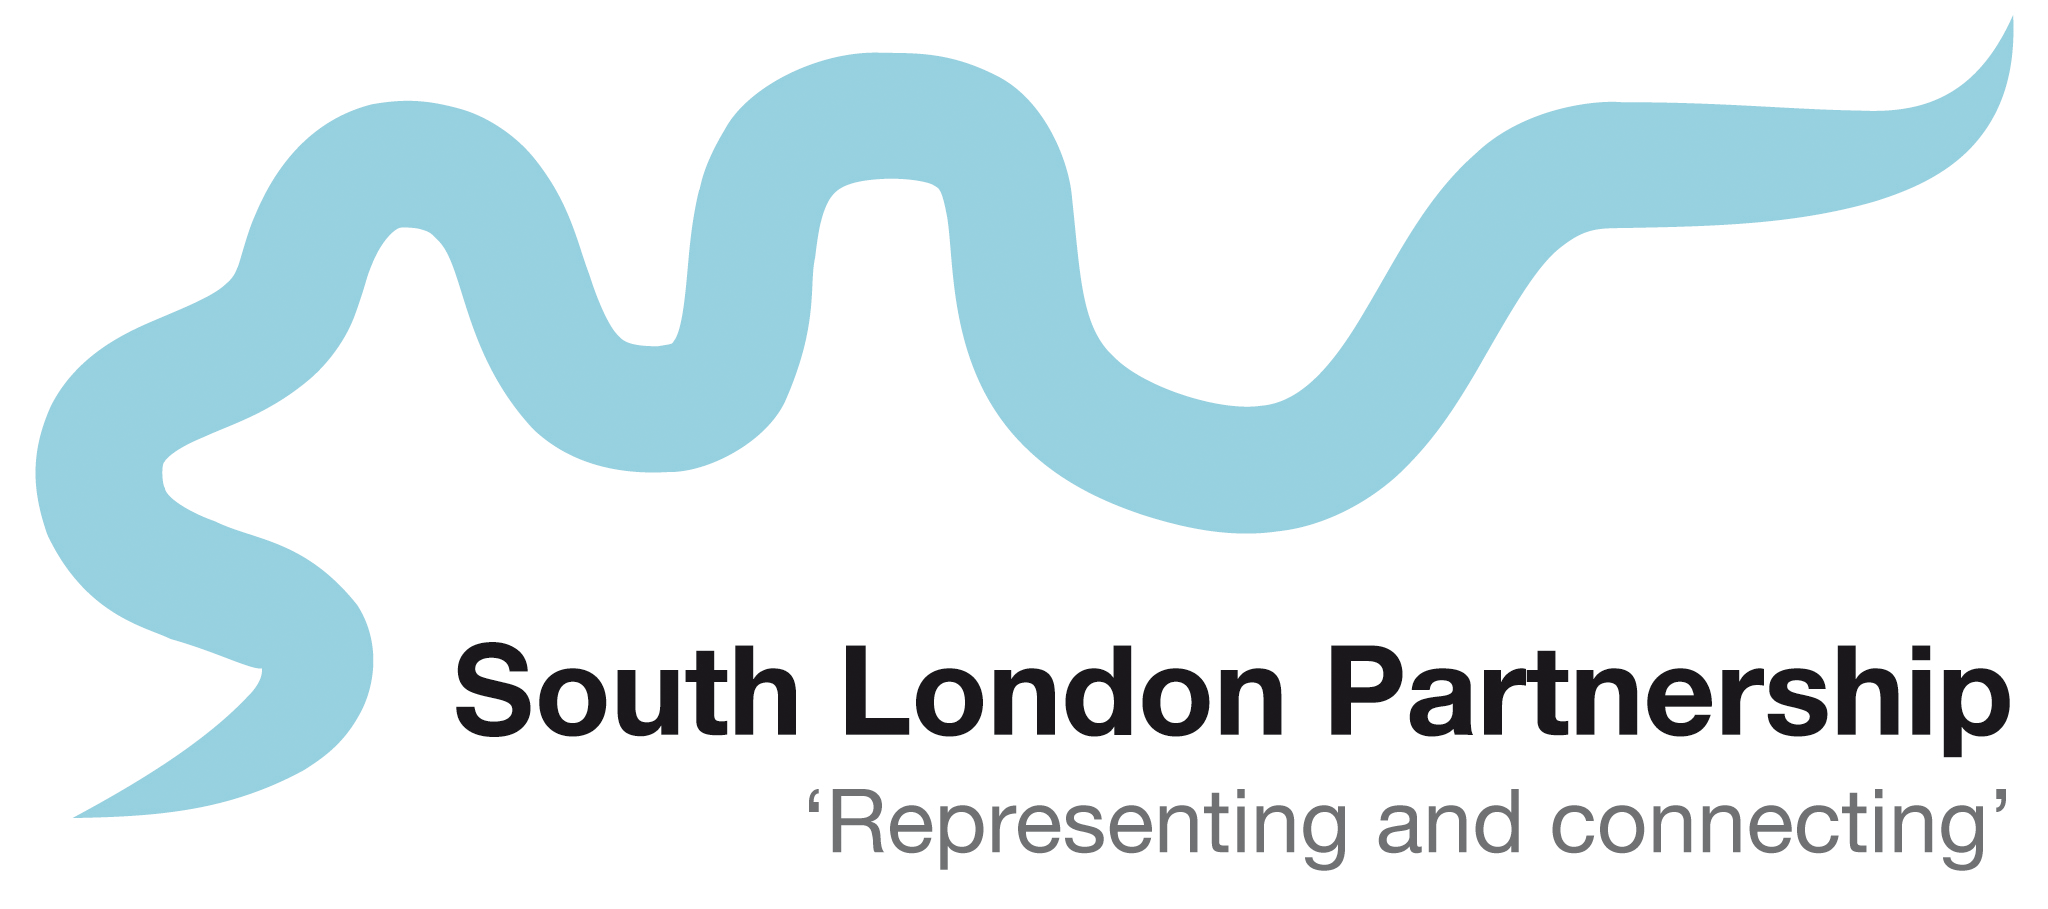 South London Partnership